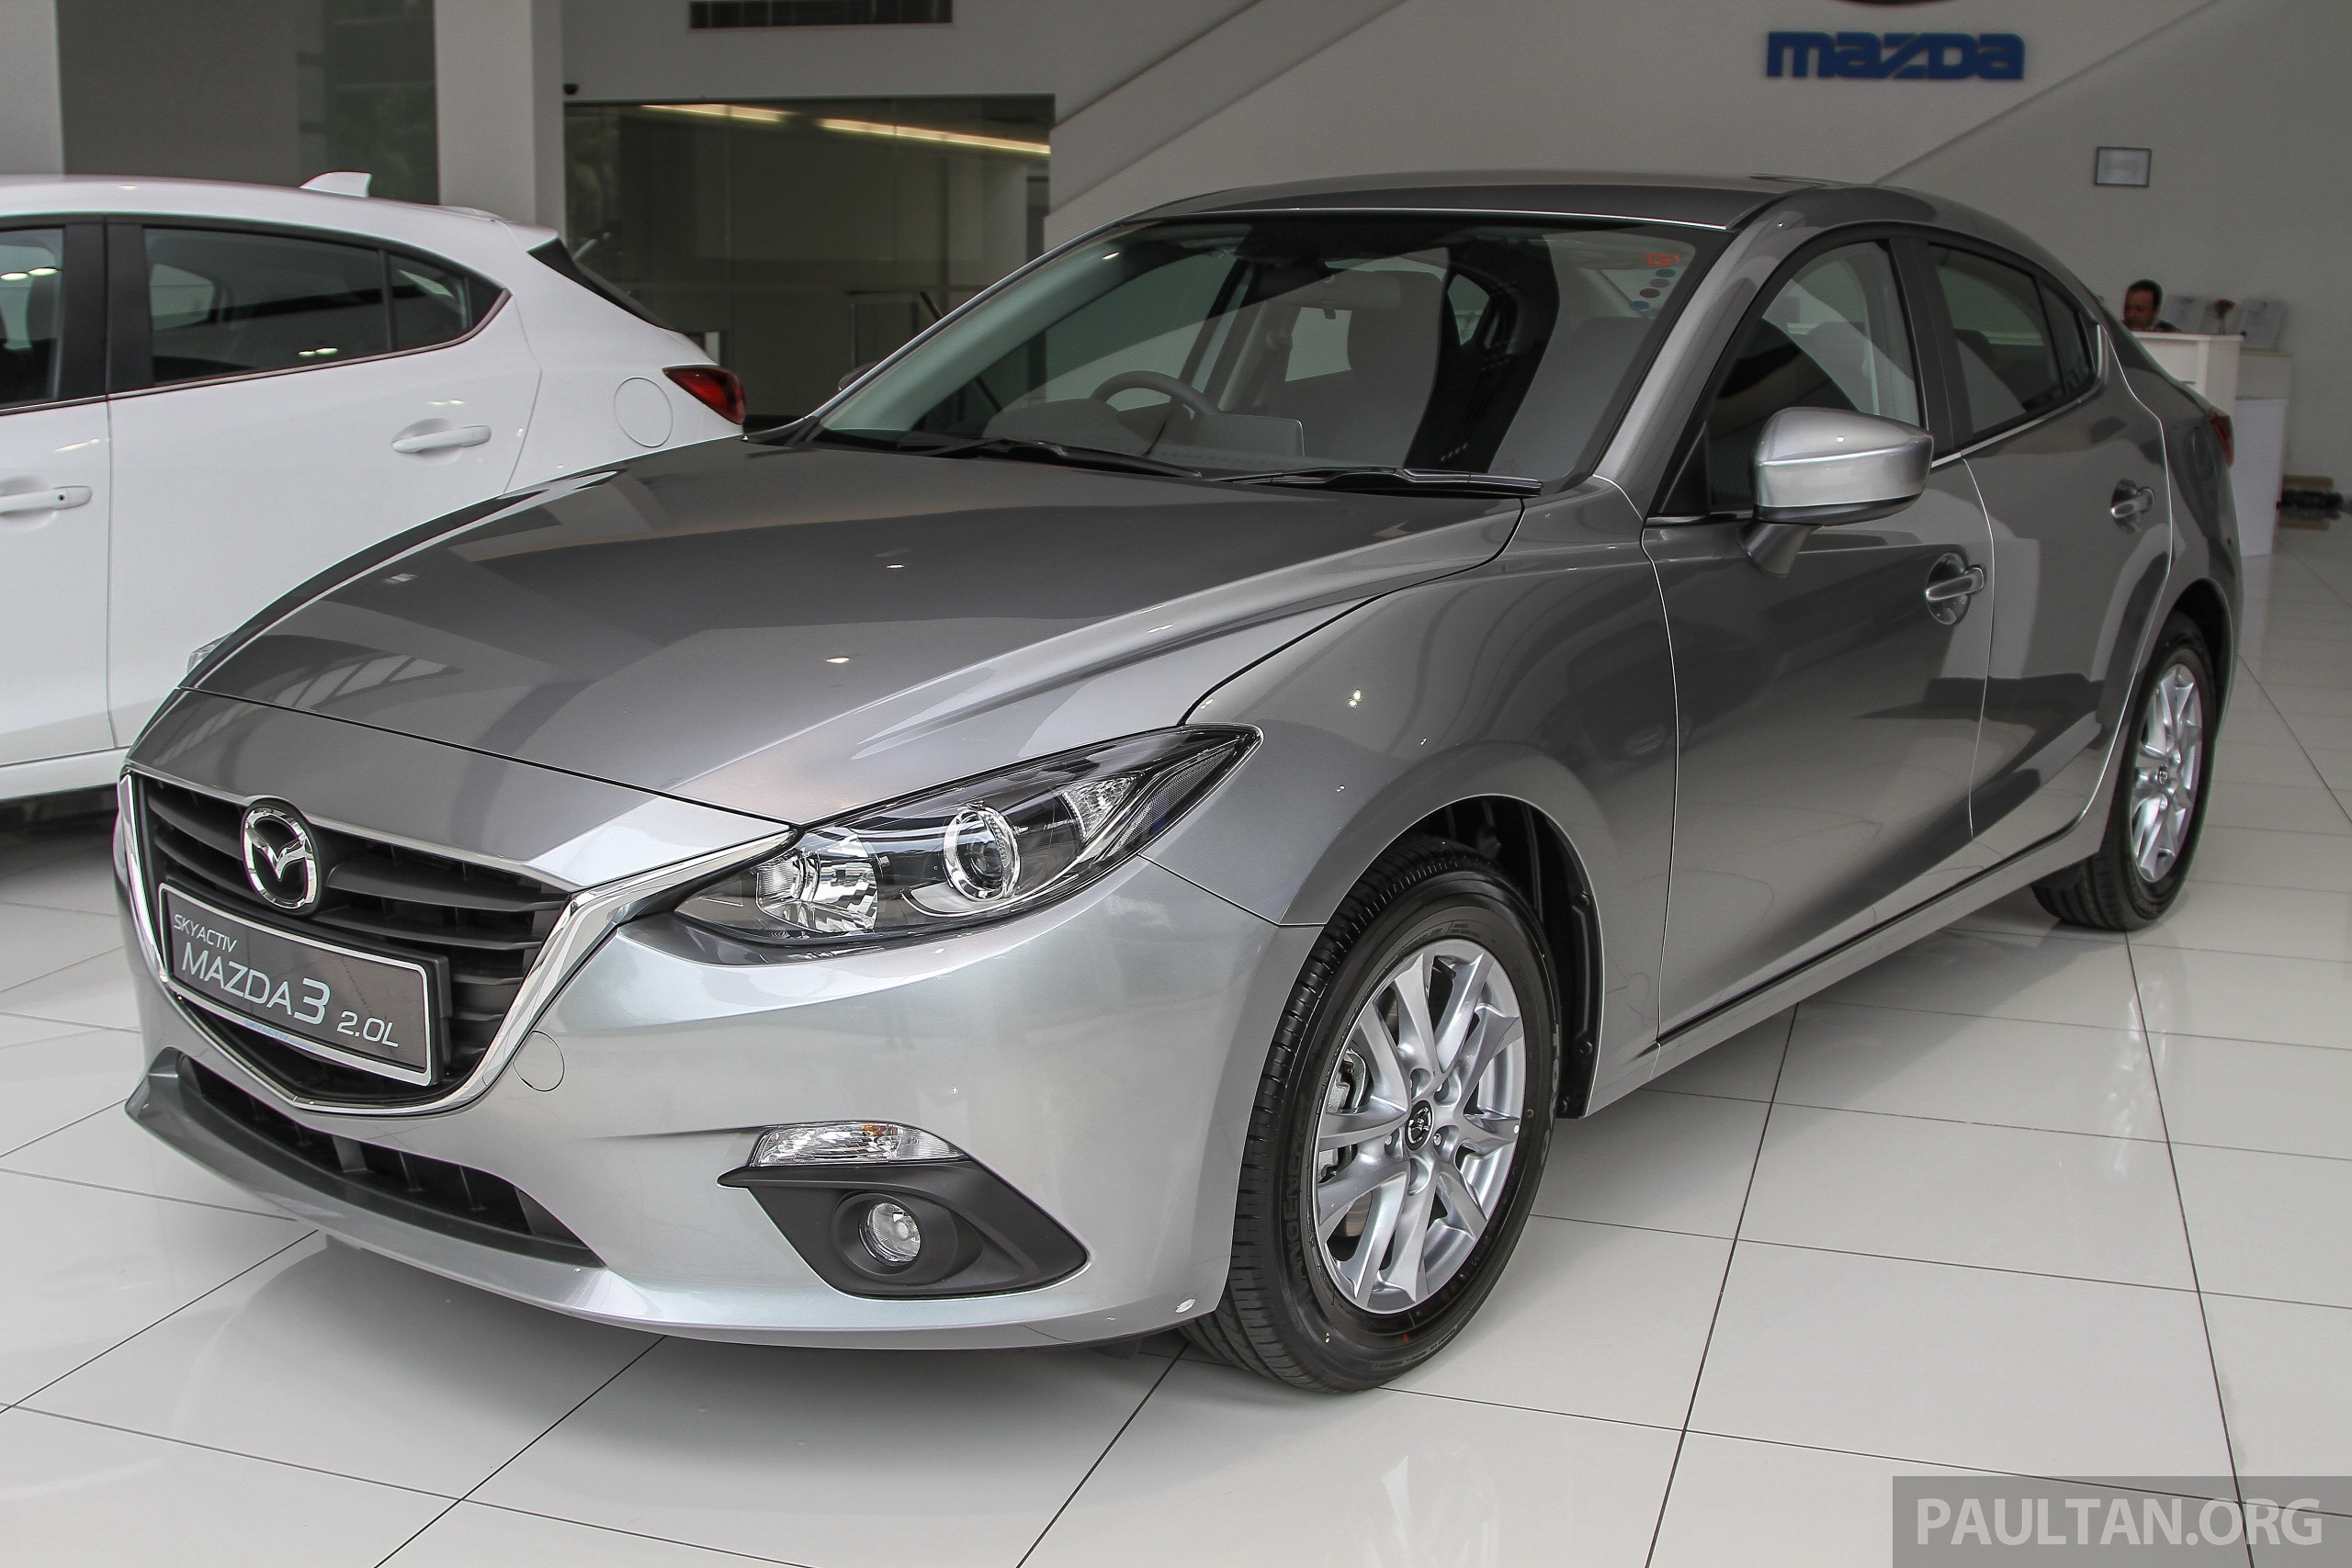 mazda 3 ckd launched in malaysia rm106k 121k image 326506. Black Bedroom Furniture Sets. Home Design Ideas